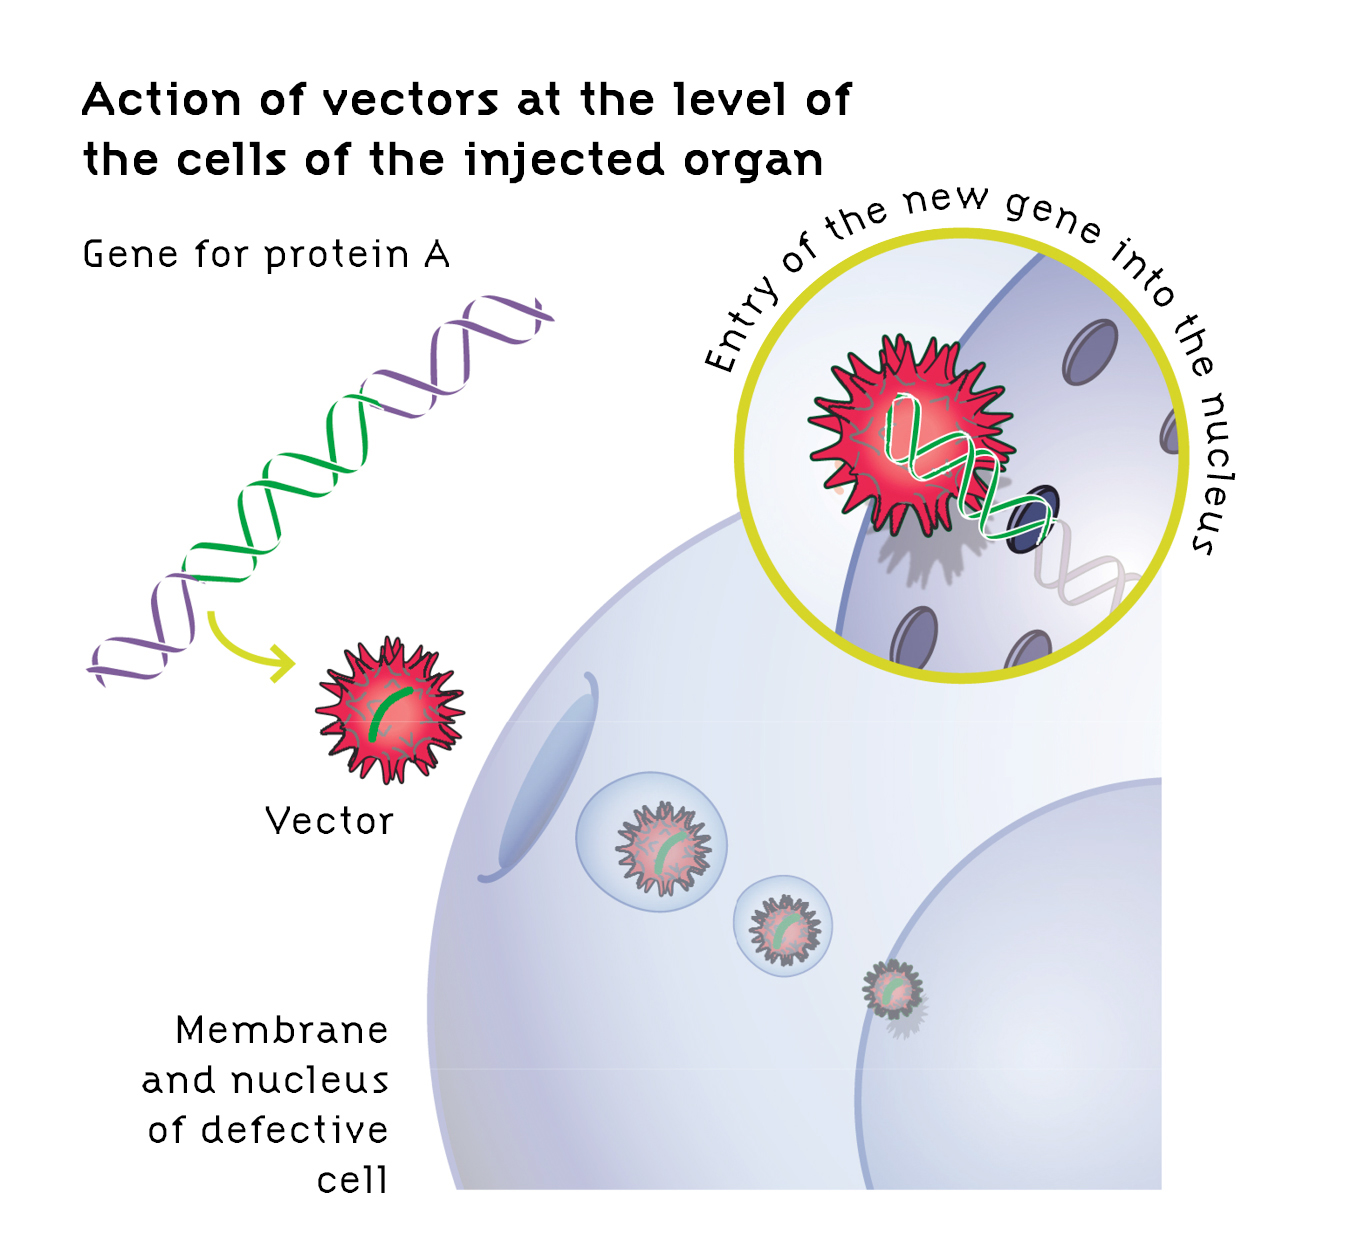 Vector gene therapy